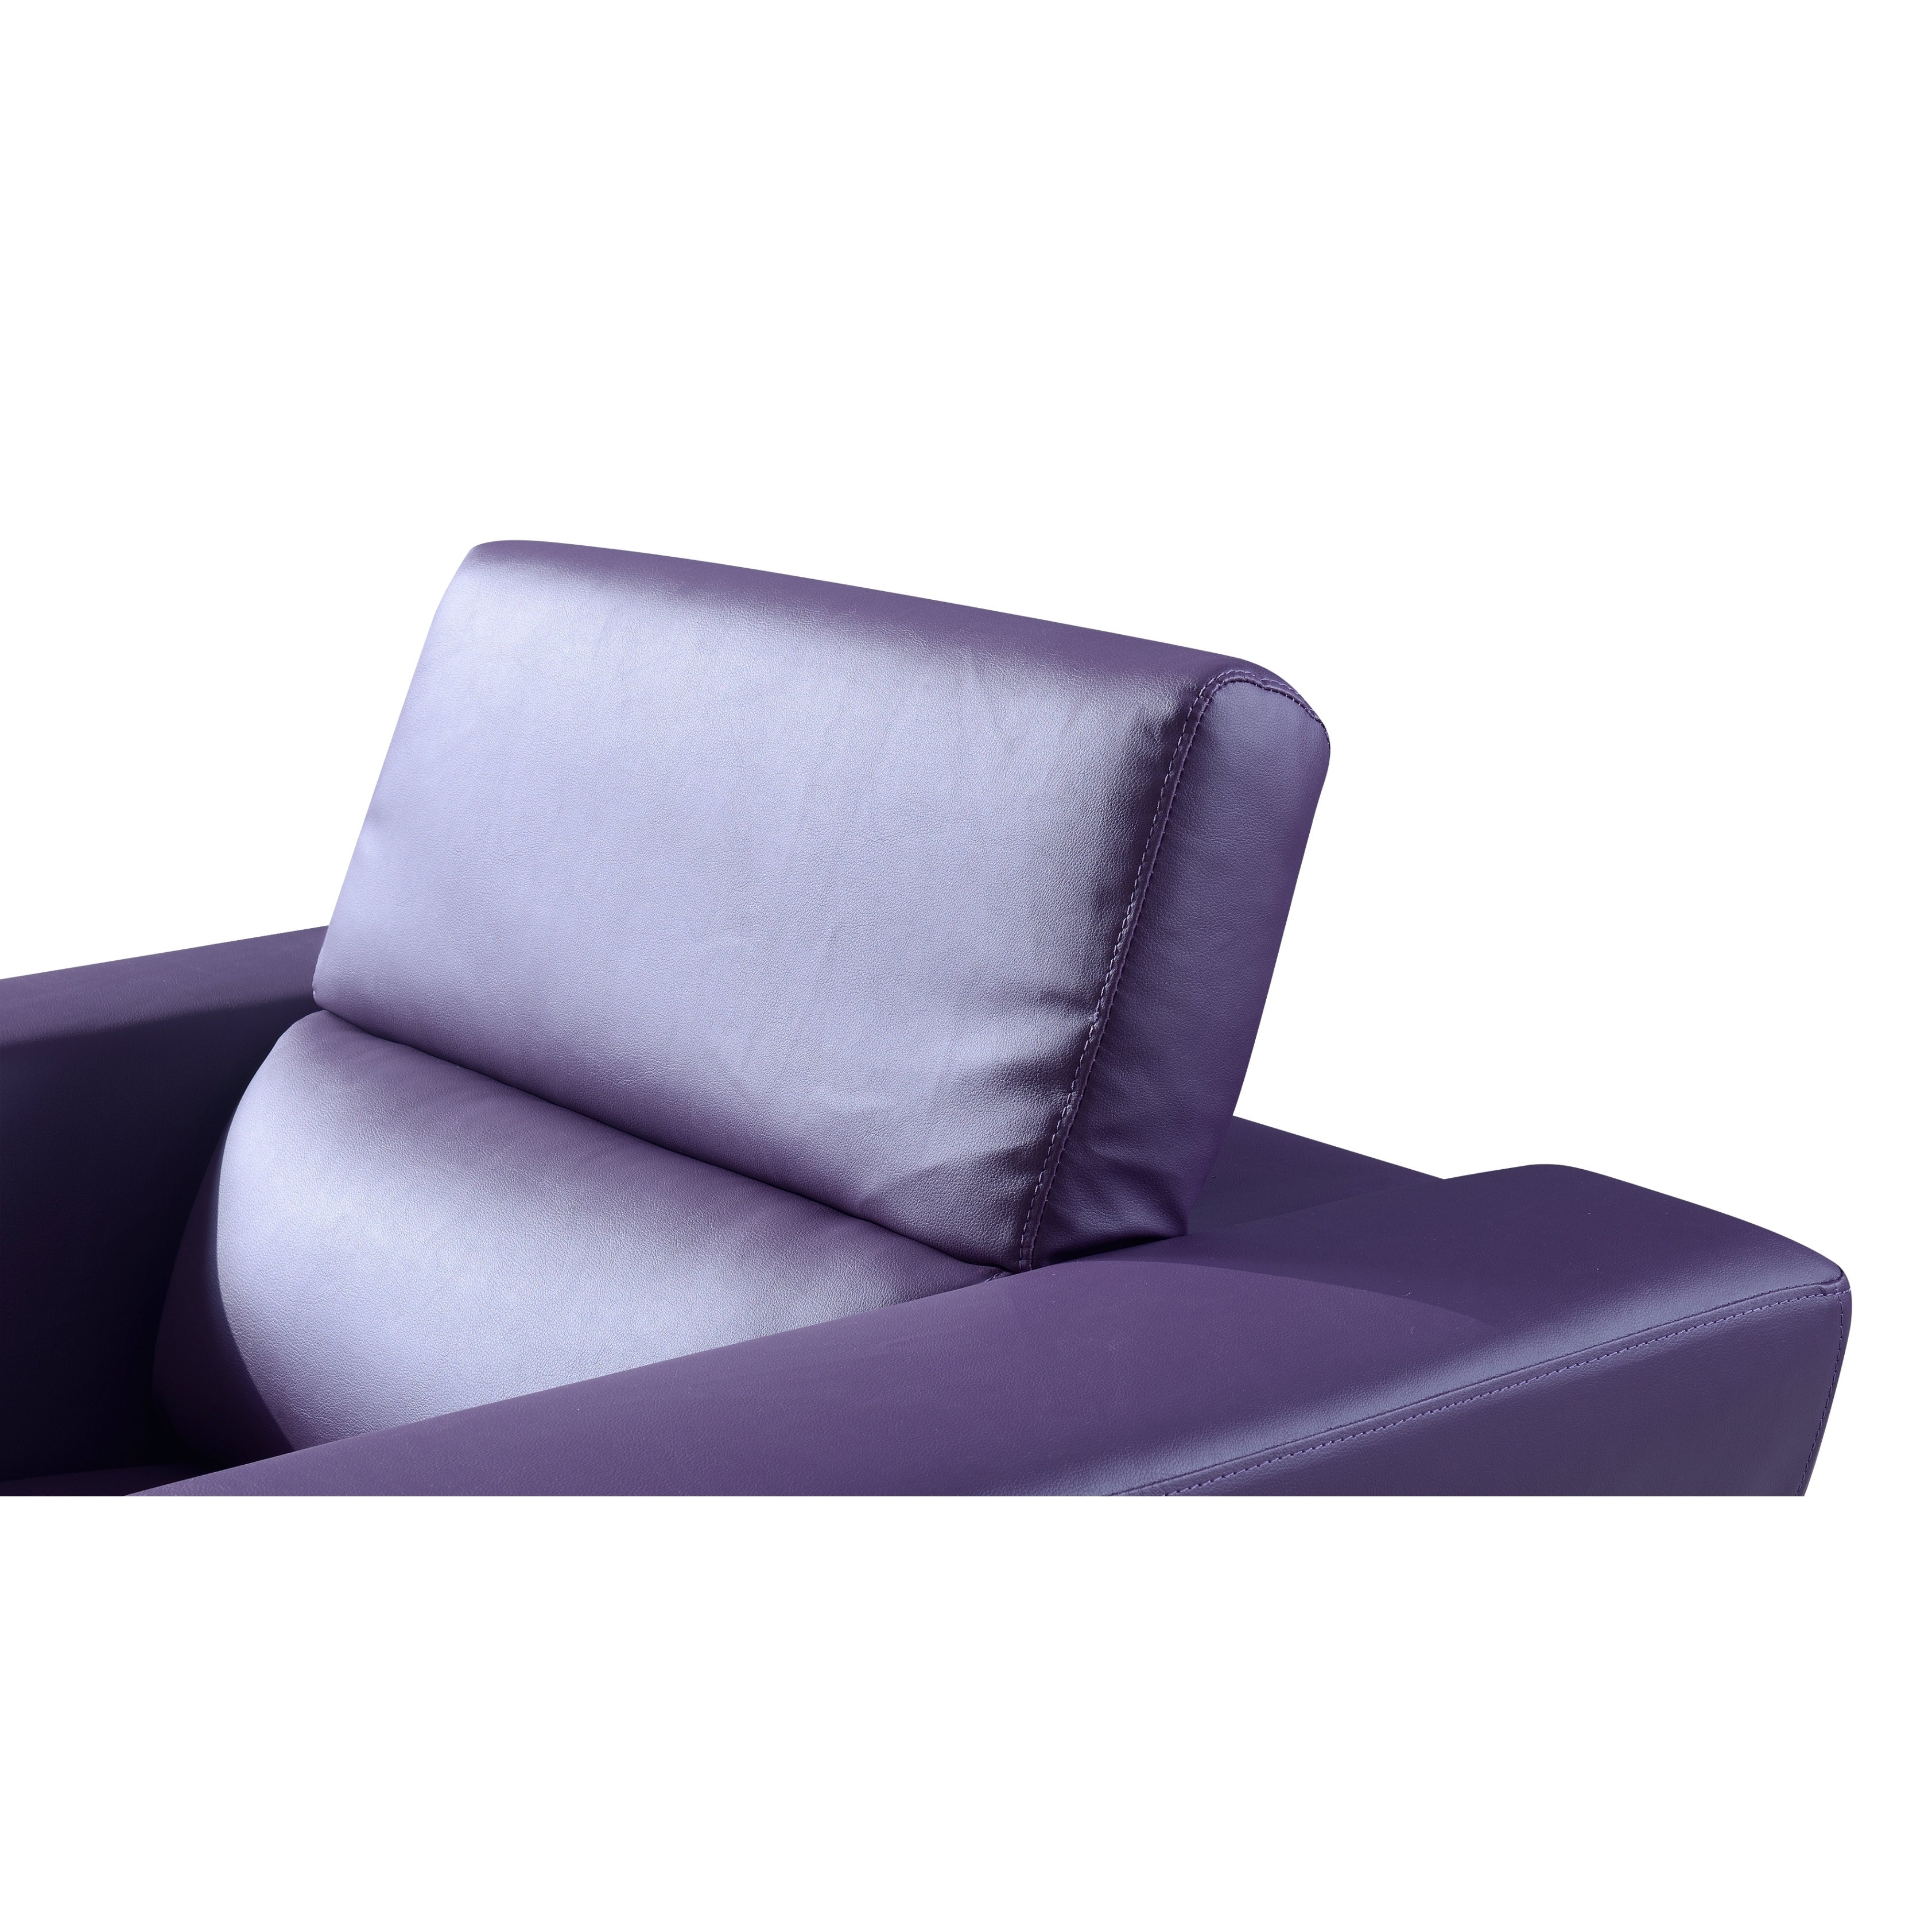 Miraculous Natalie Purple Bonded Leather Sofa Theyellowbook Wood Chair Design Ideas Theyellowbookinfo